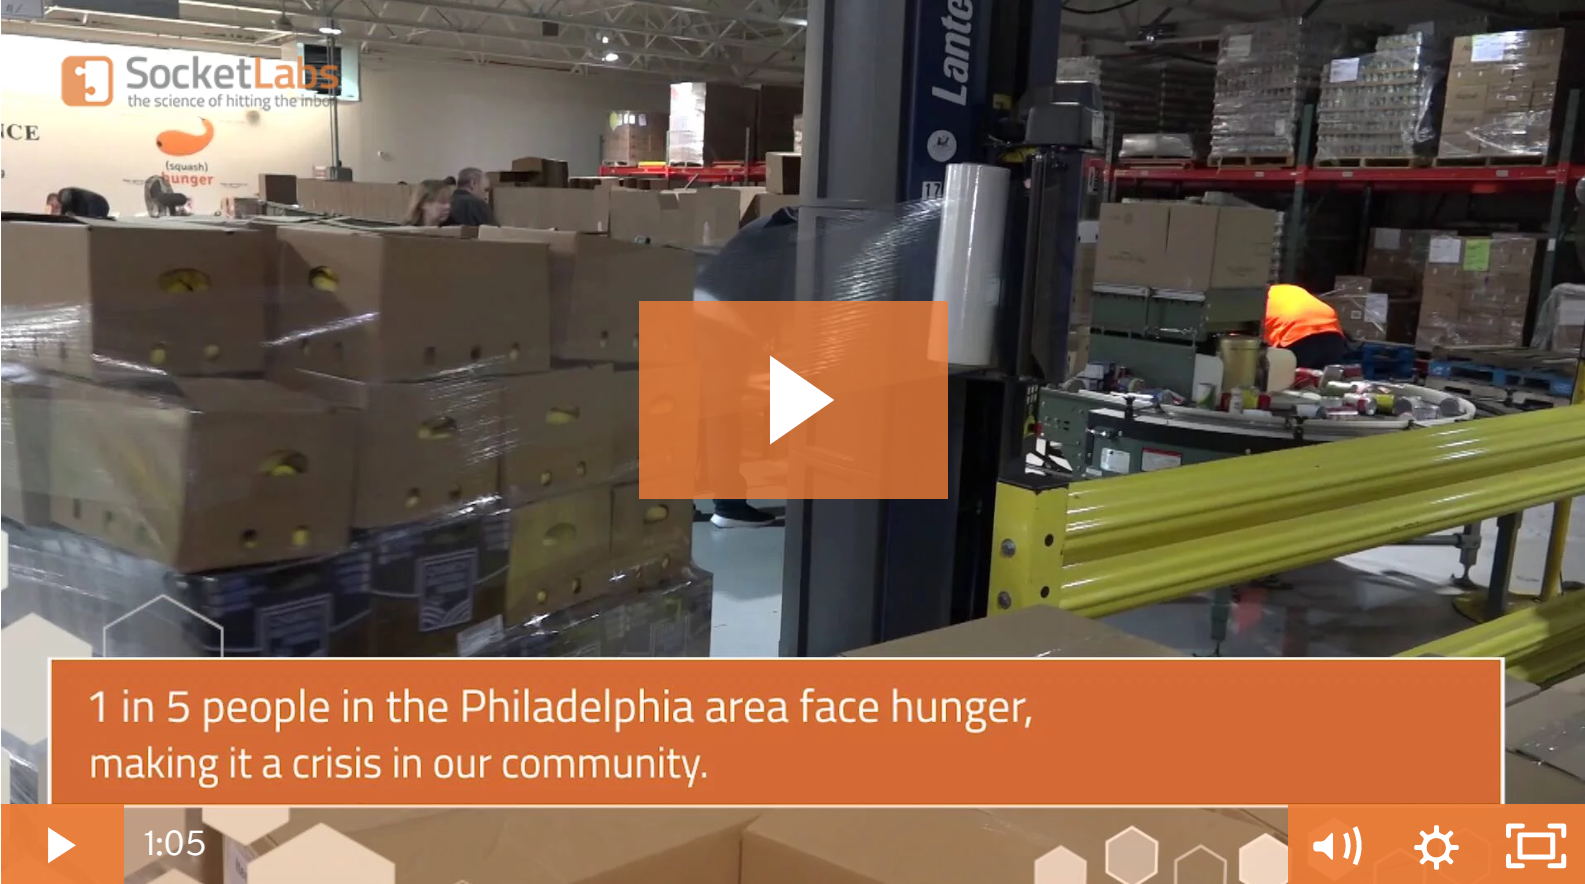 SocketLabs Fights Hunger In Philadelphia